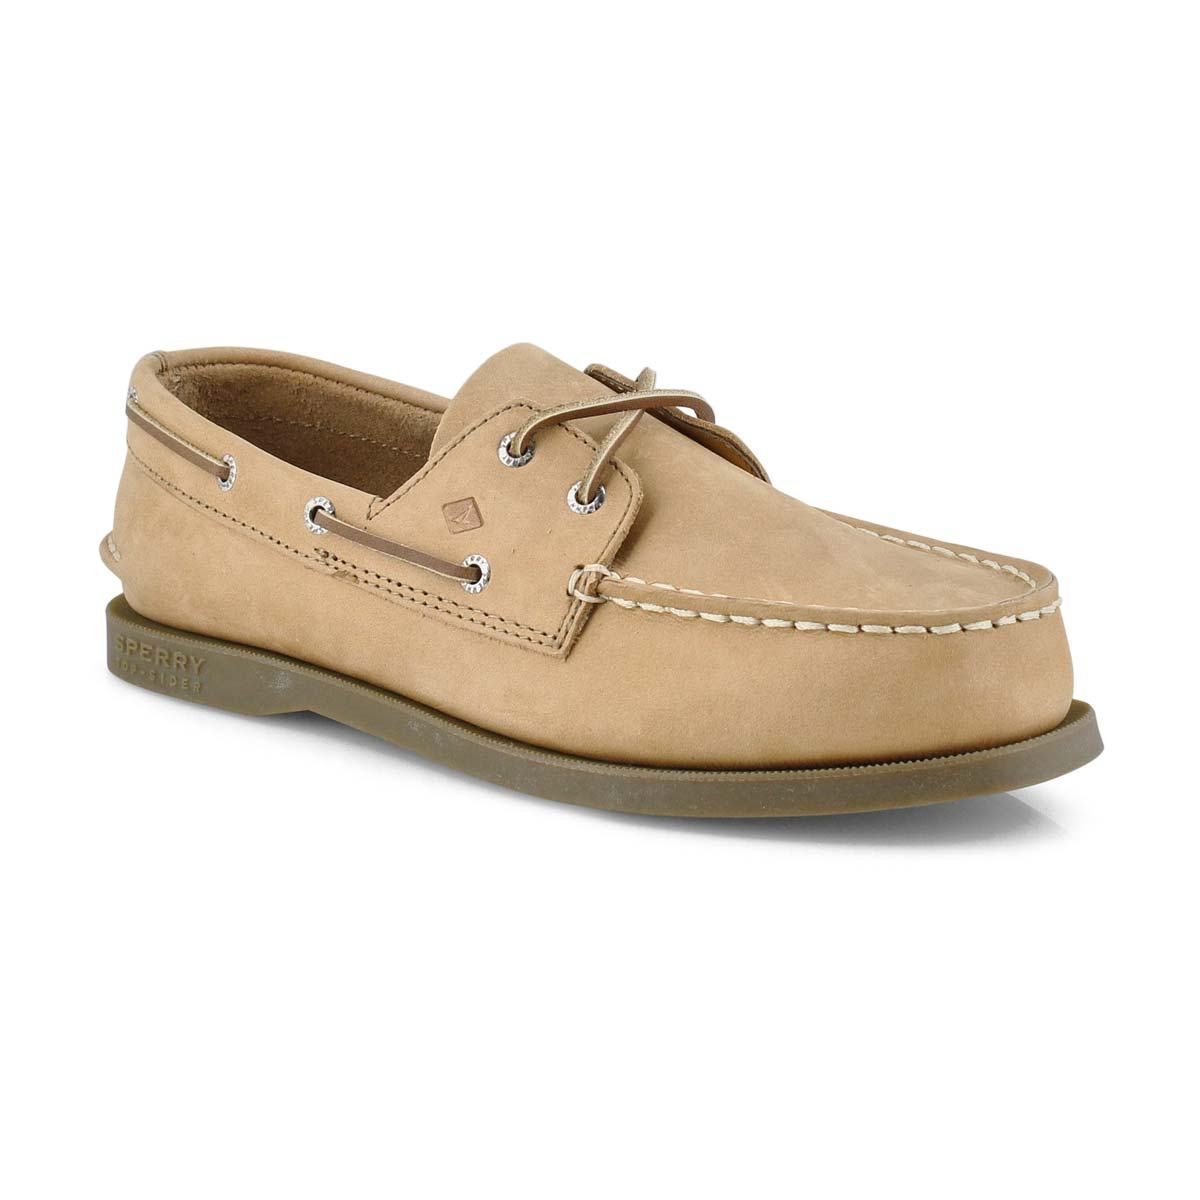 Find great deals on eBay for boys boat shoe. Shop with confidence.